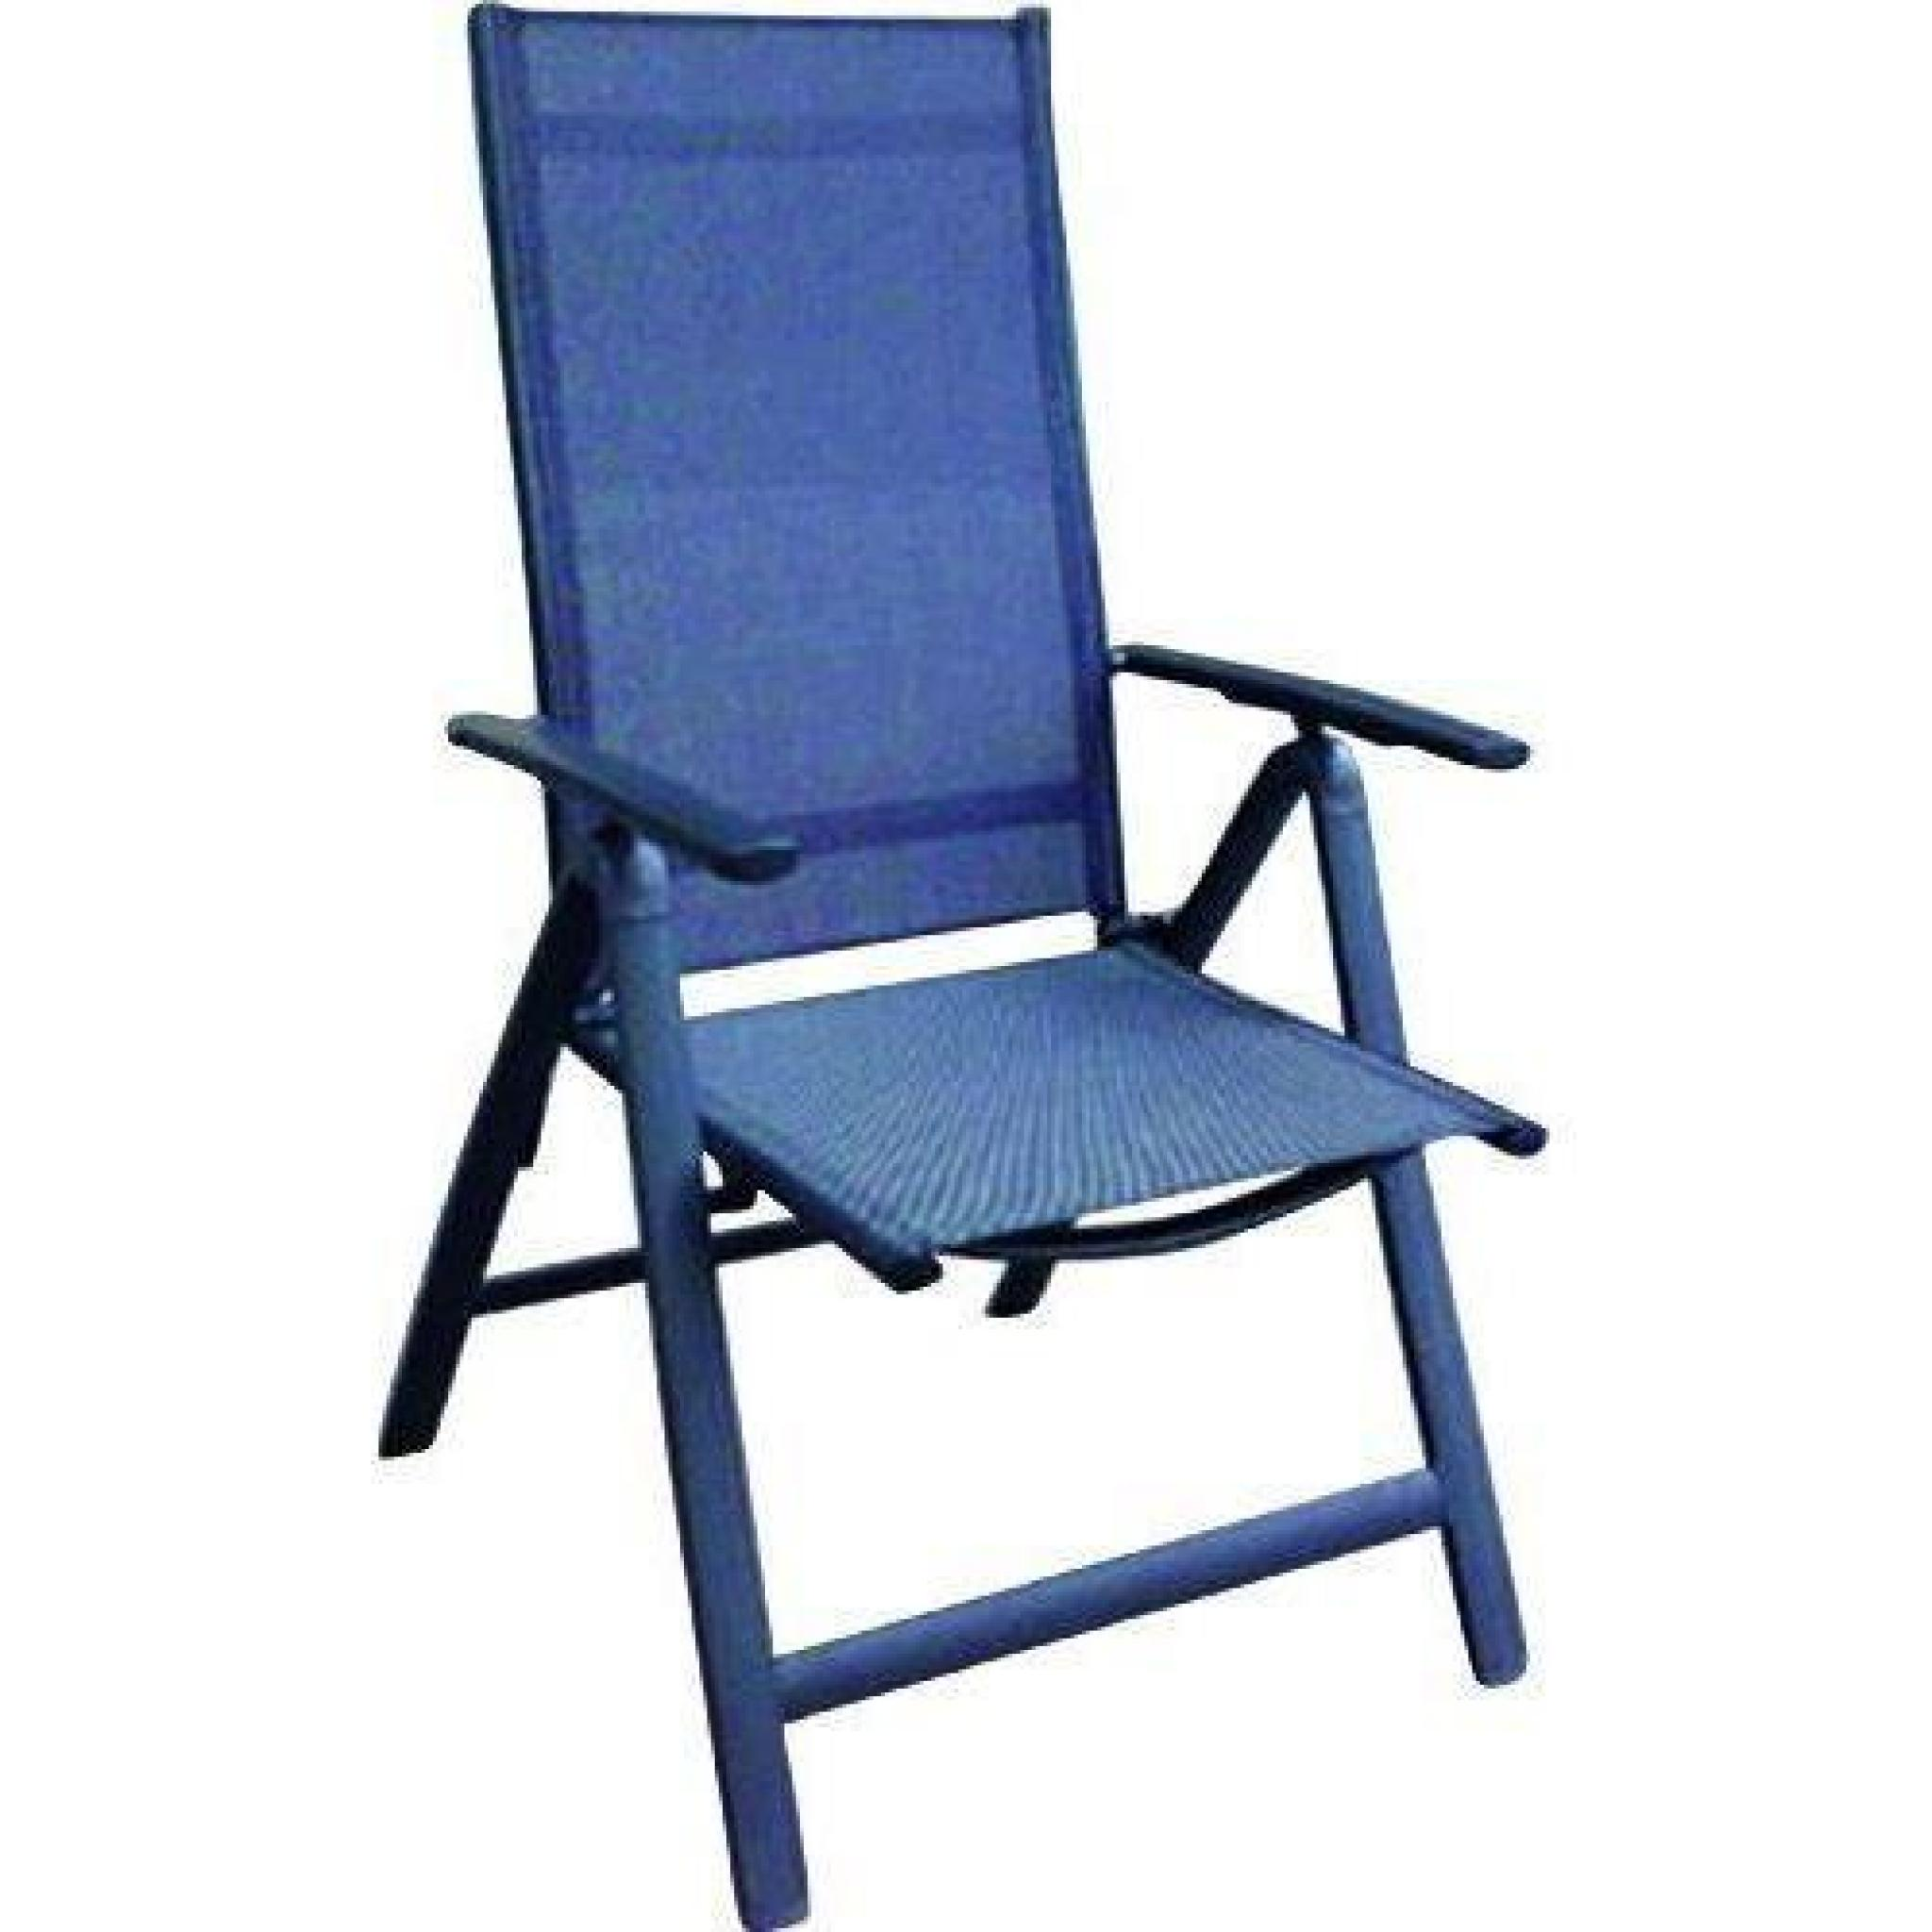 Chaise En Promo Tissu 417213 Stern Ther… Pliable 0PnXNwO8k